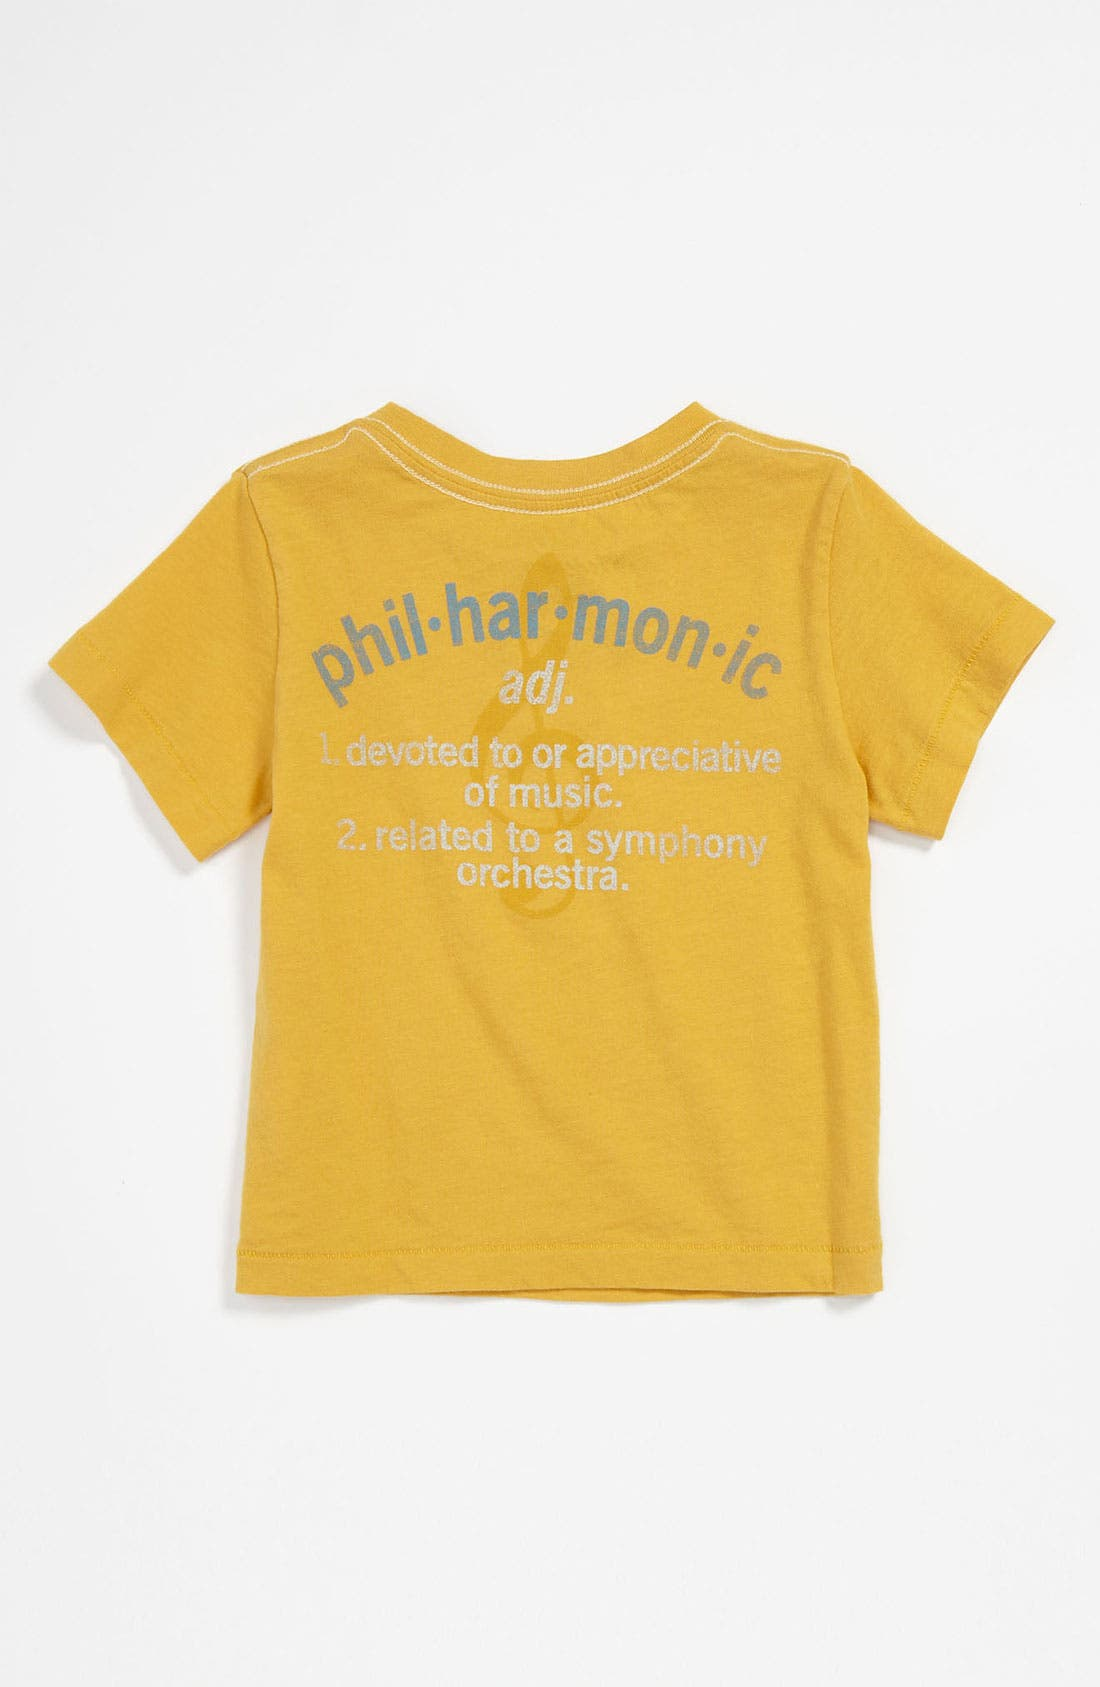 Alternate Image 2  - Peek 'Philharmonic' T-Shirt (Infant)